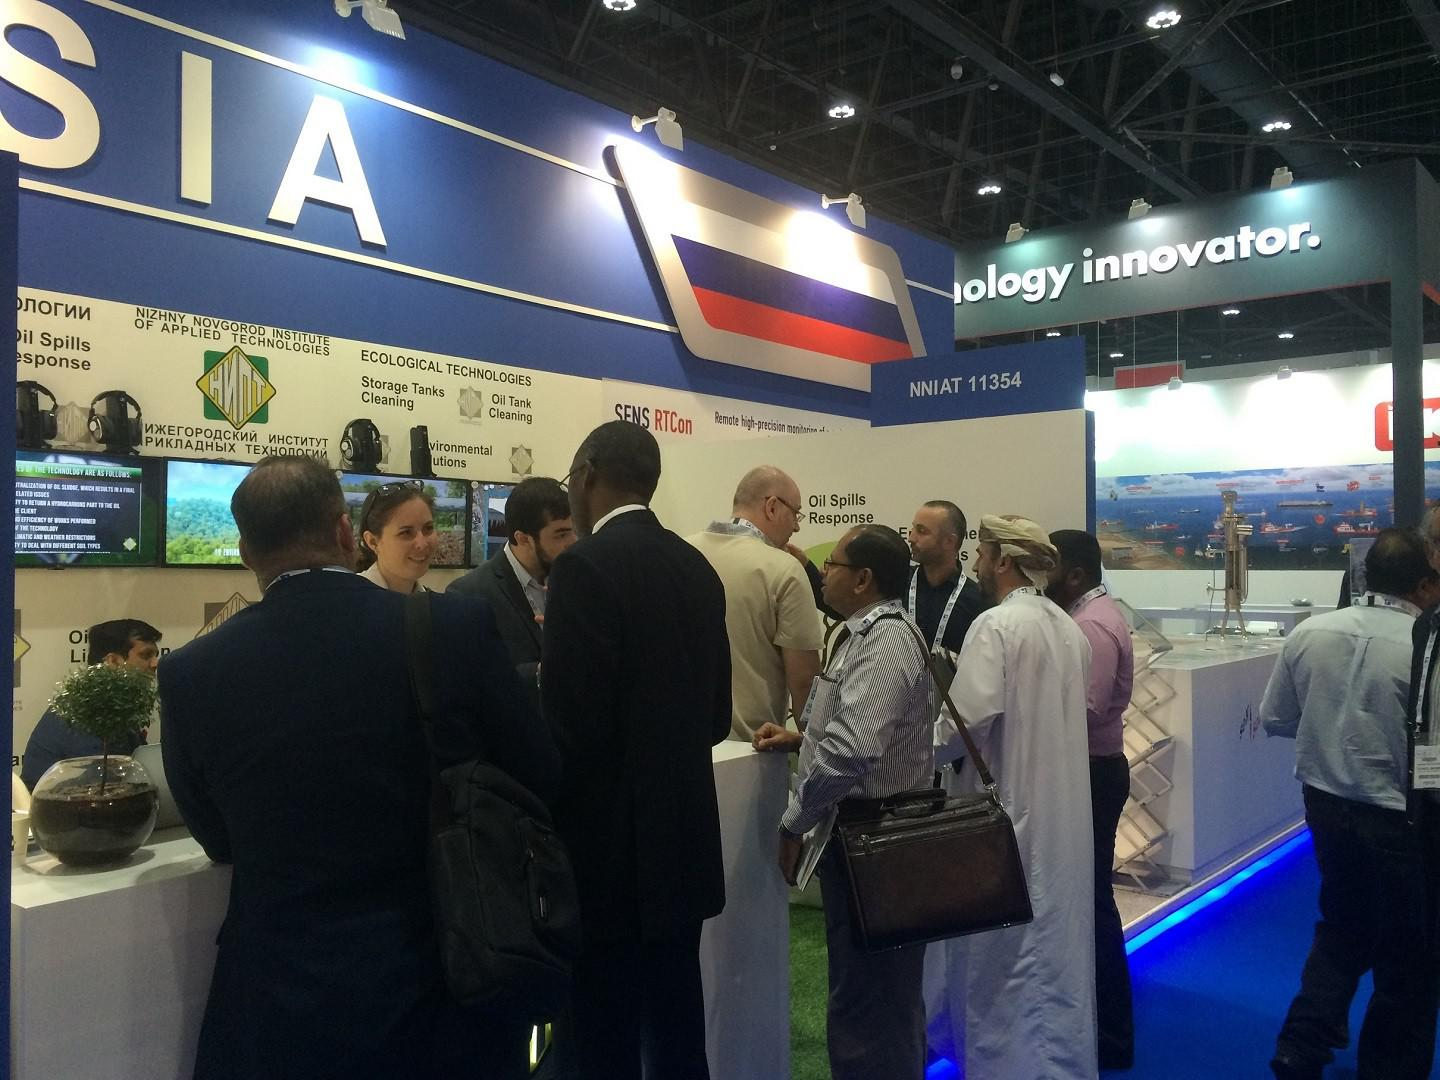 Nizhny Novgorod institute of applied technologies took part in the international oil exhibition ADIPEC